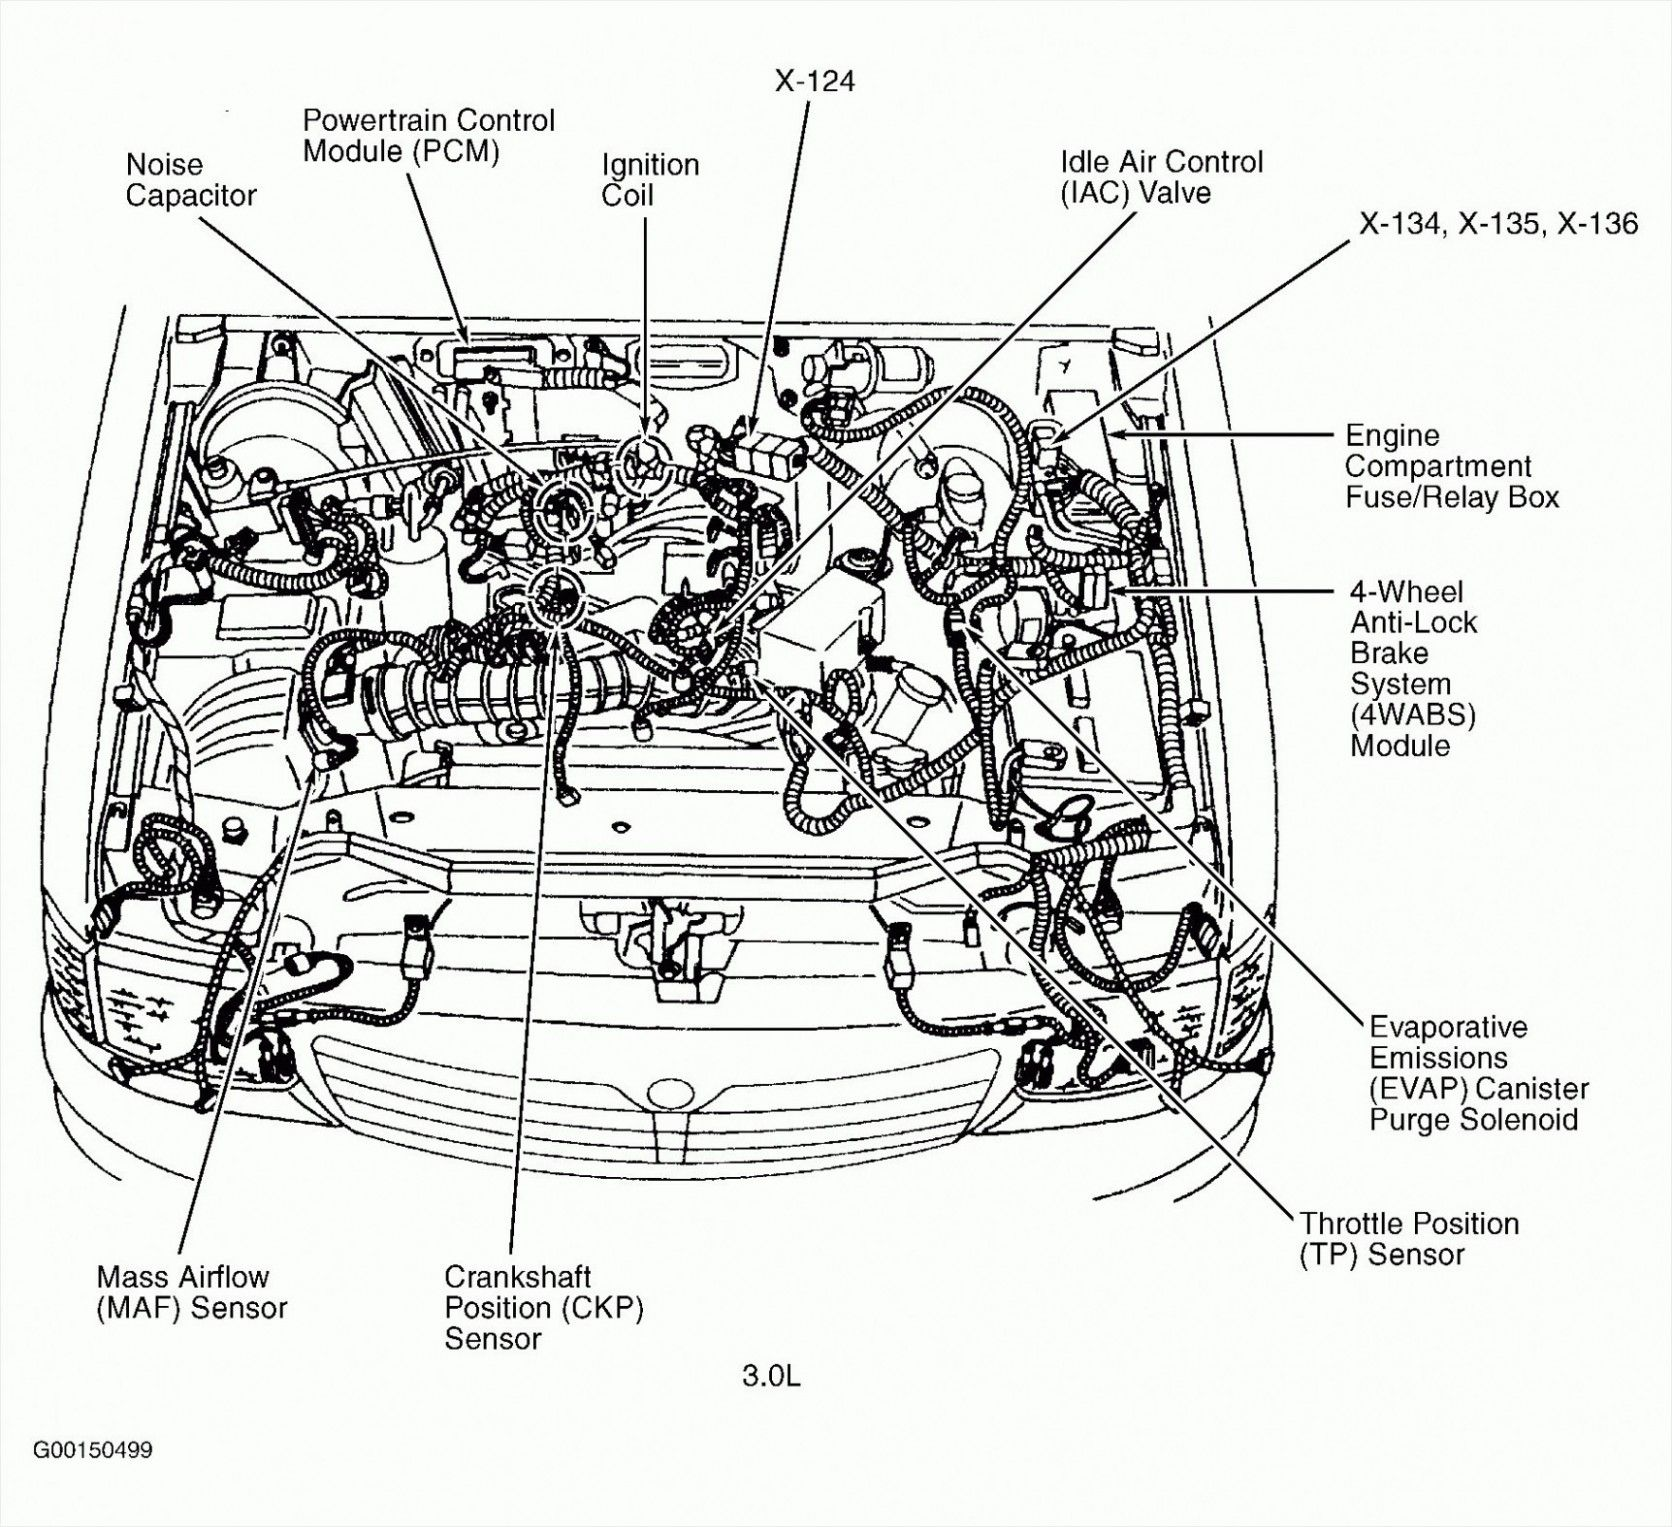 Opel Corsa 4 4 Dti Engine Diagram Uk Di 2020 Taurus Ford Diagram